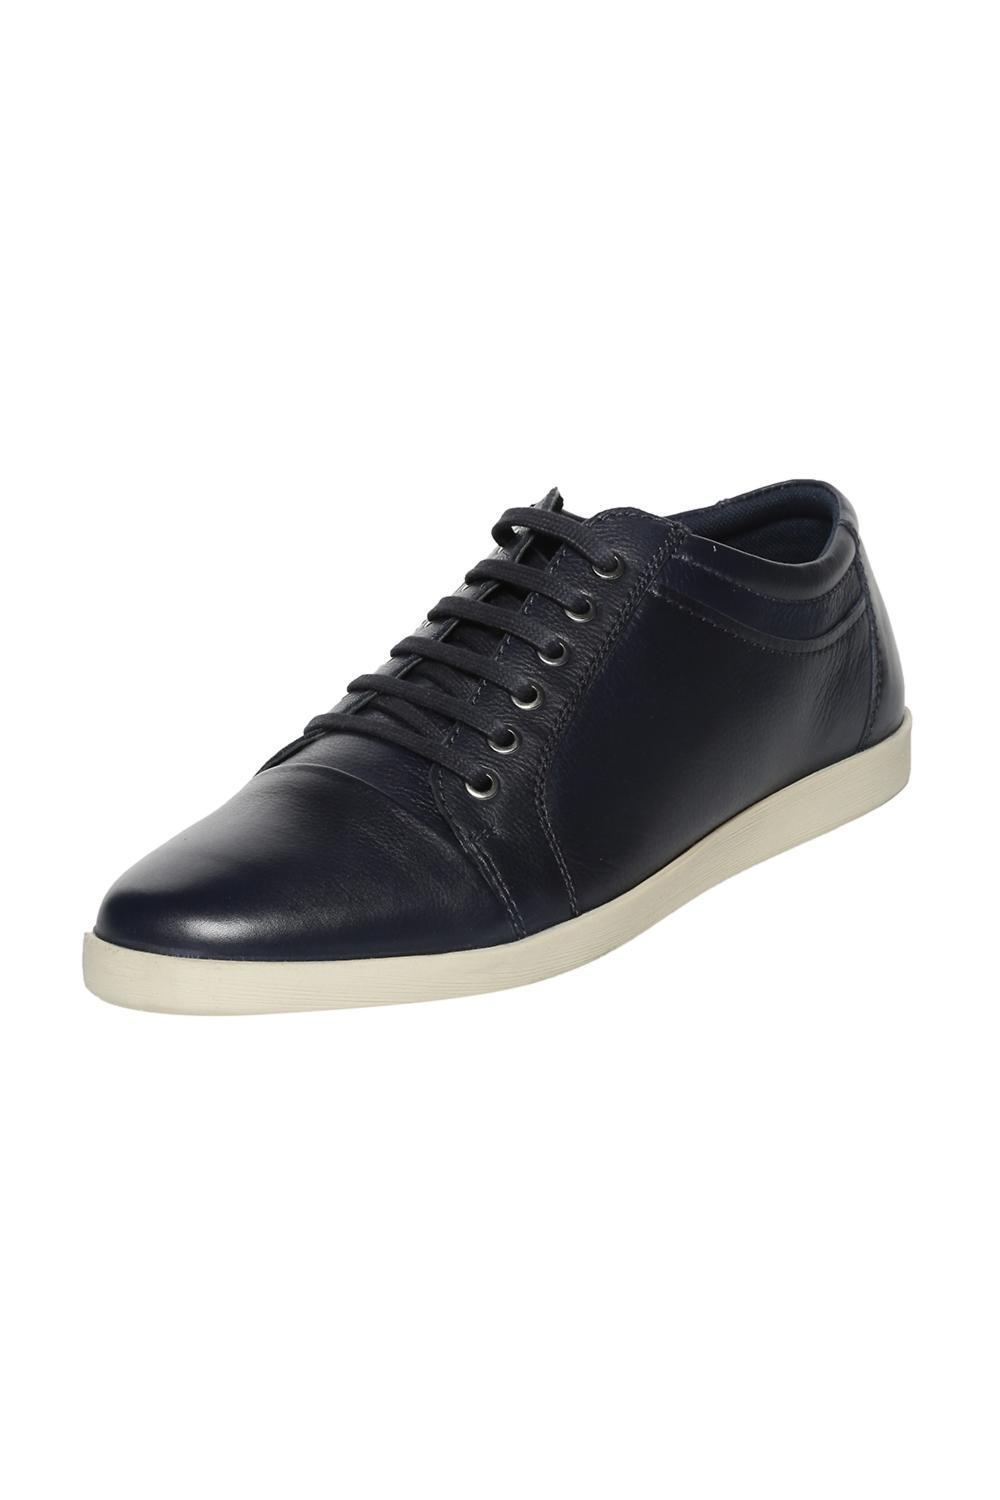 ace2007af4 Solly Jeans Co Footwear, Allen Solly Navy Casual Shoes for Men at Allensolly .com